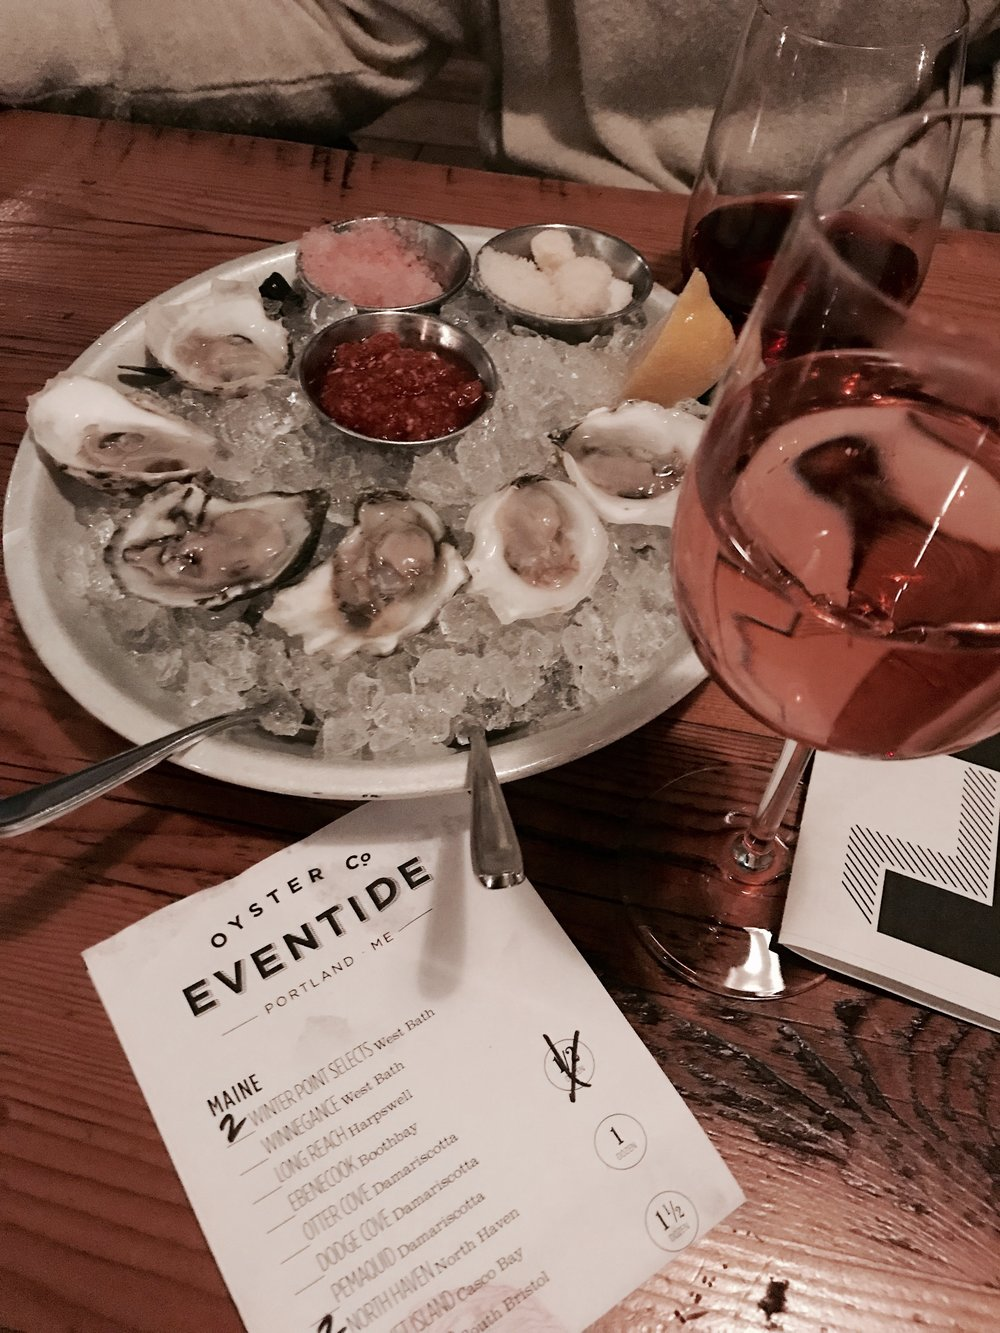 Ok...I lied...here is one photo from our dinner at Eventide! Oysters and sparkling rose...yes please!!!